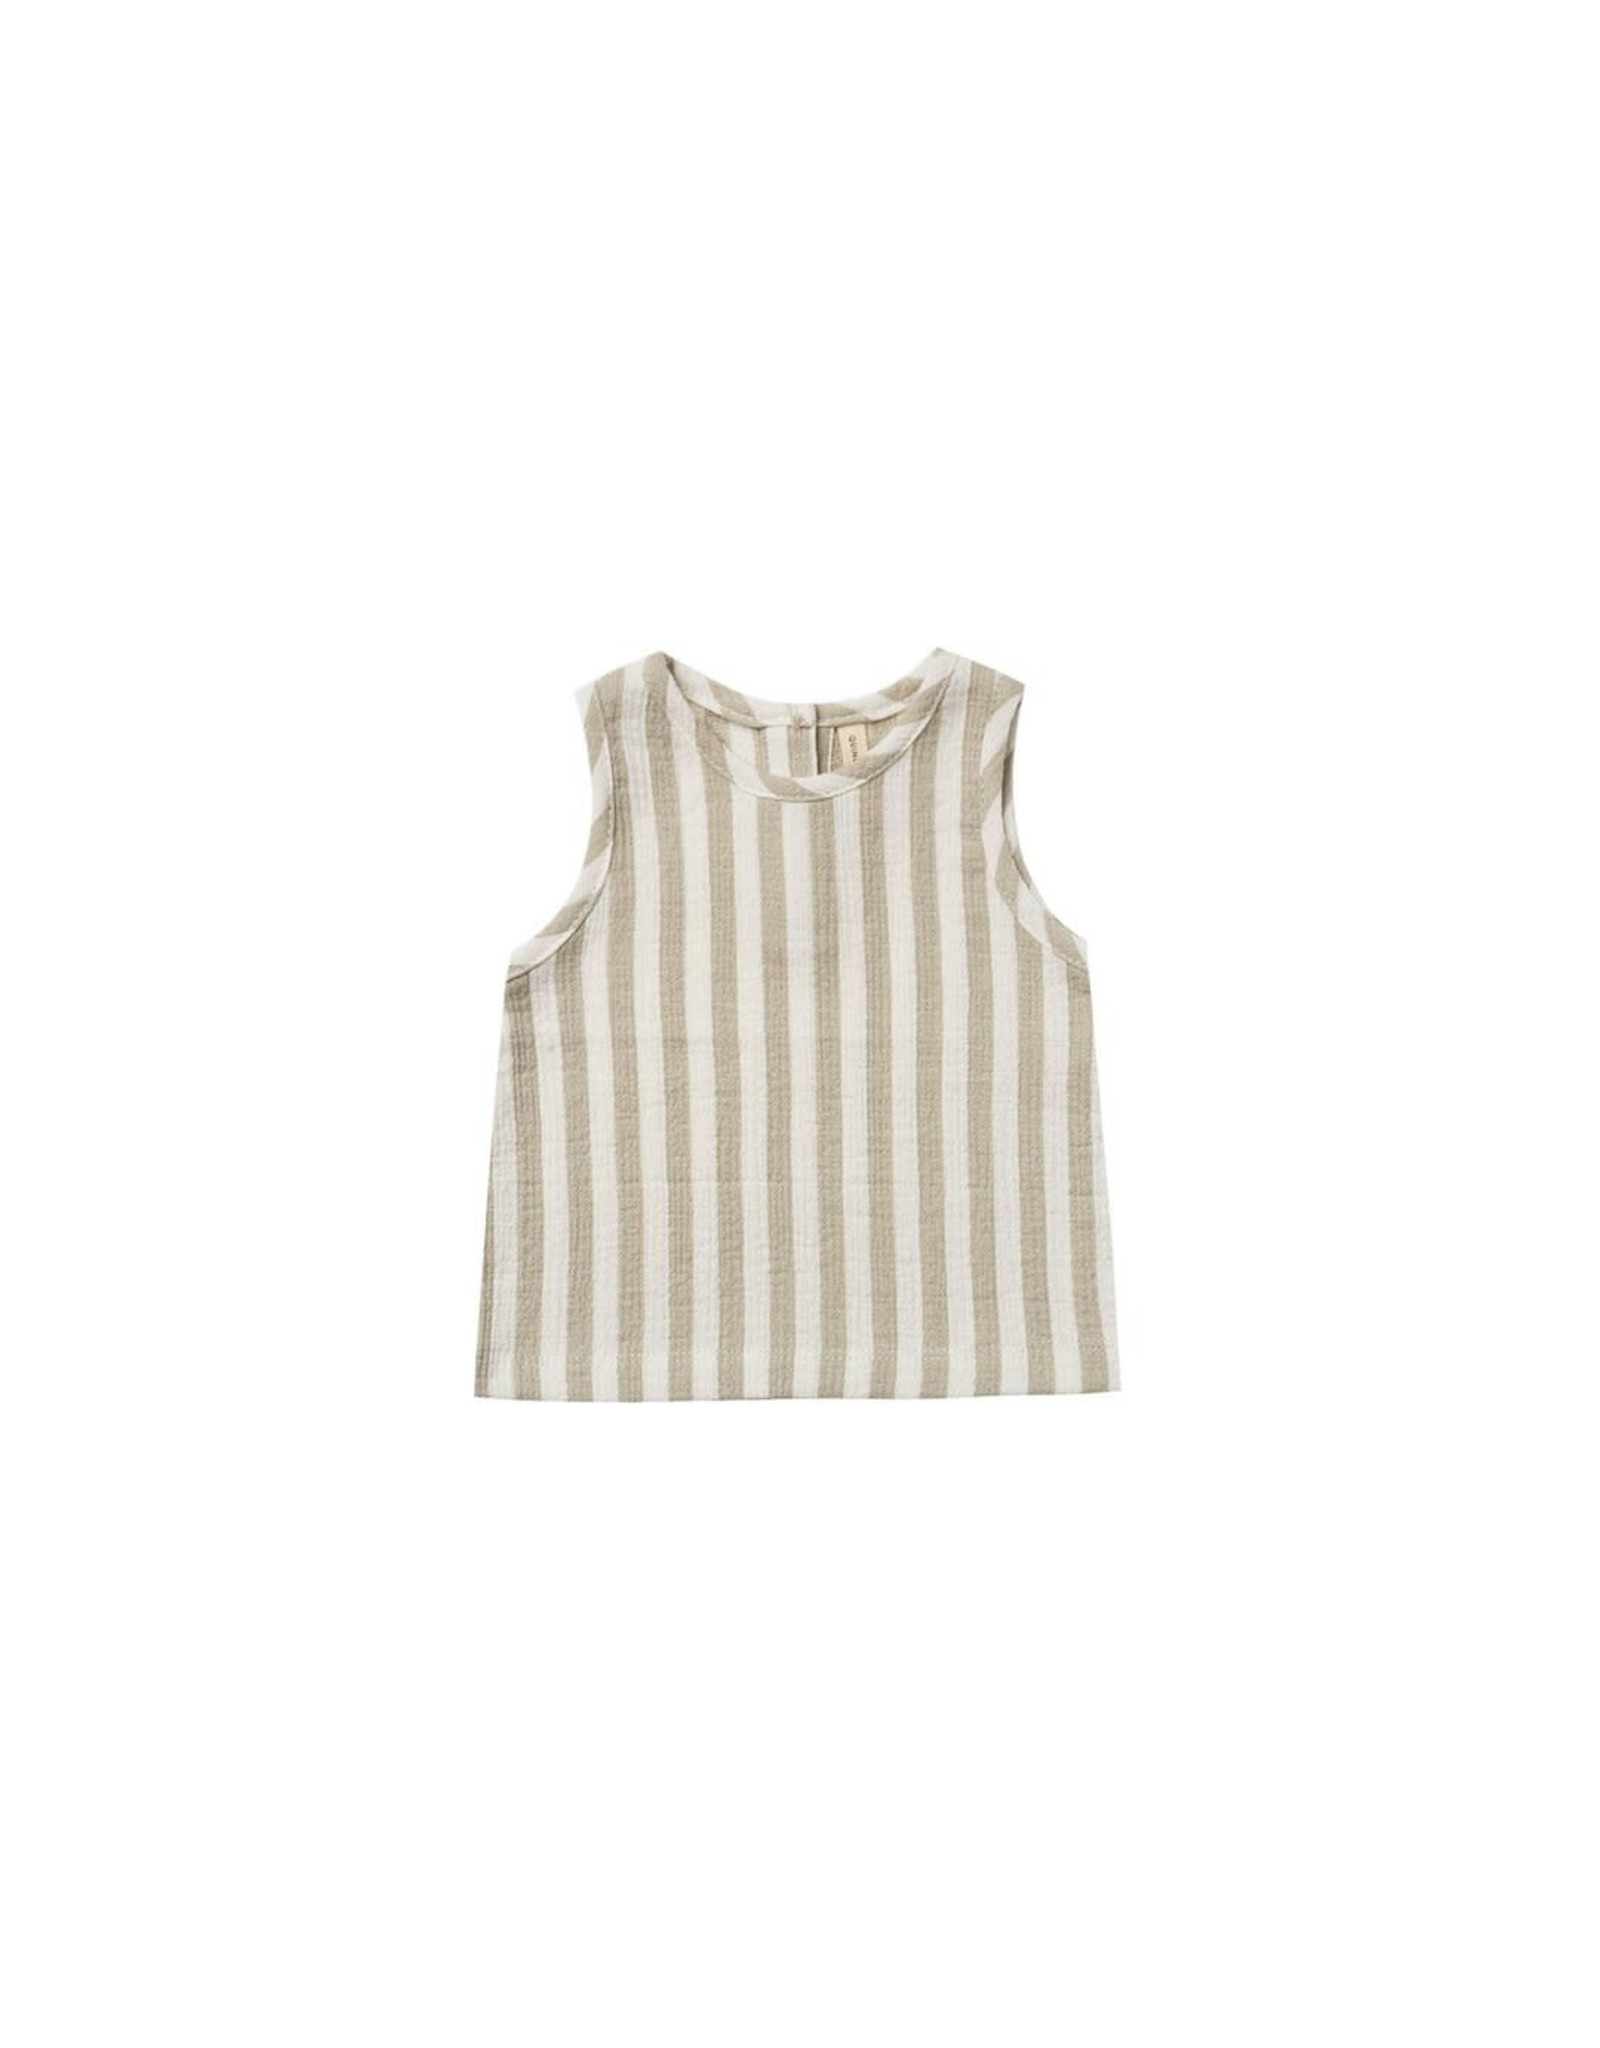 Quincy Mae Quincy Mae Woven Tank